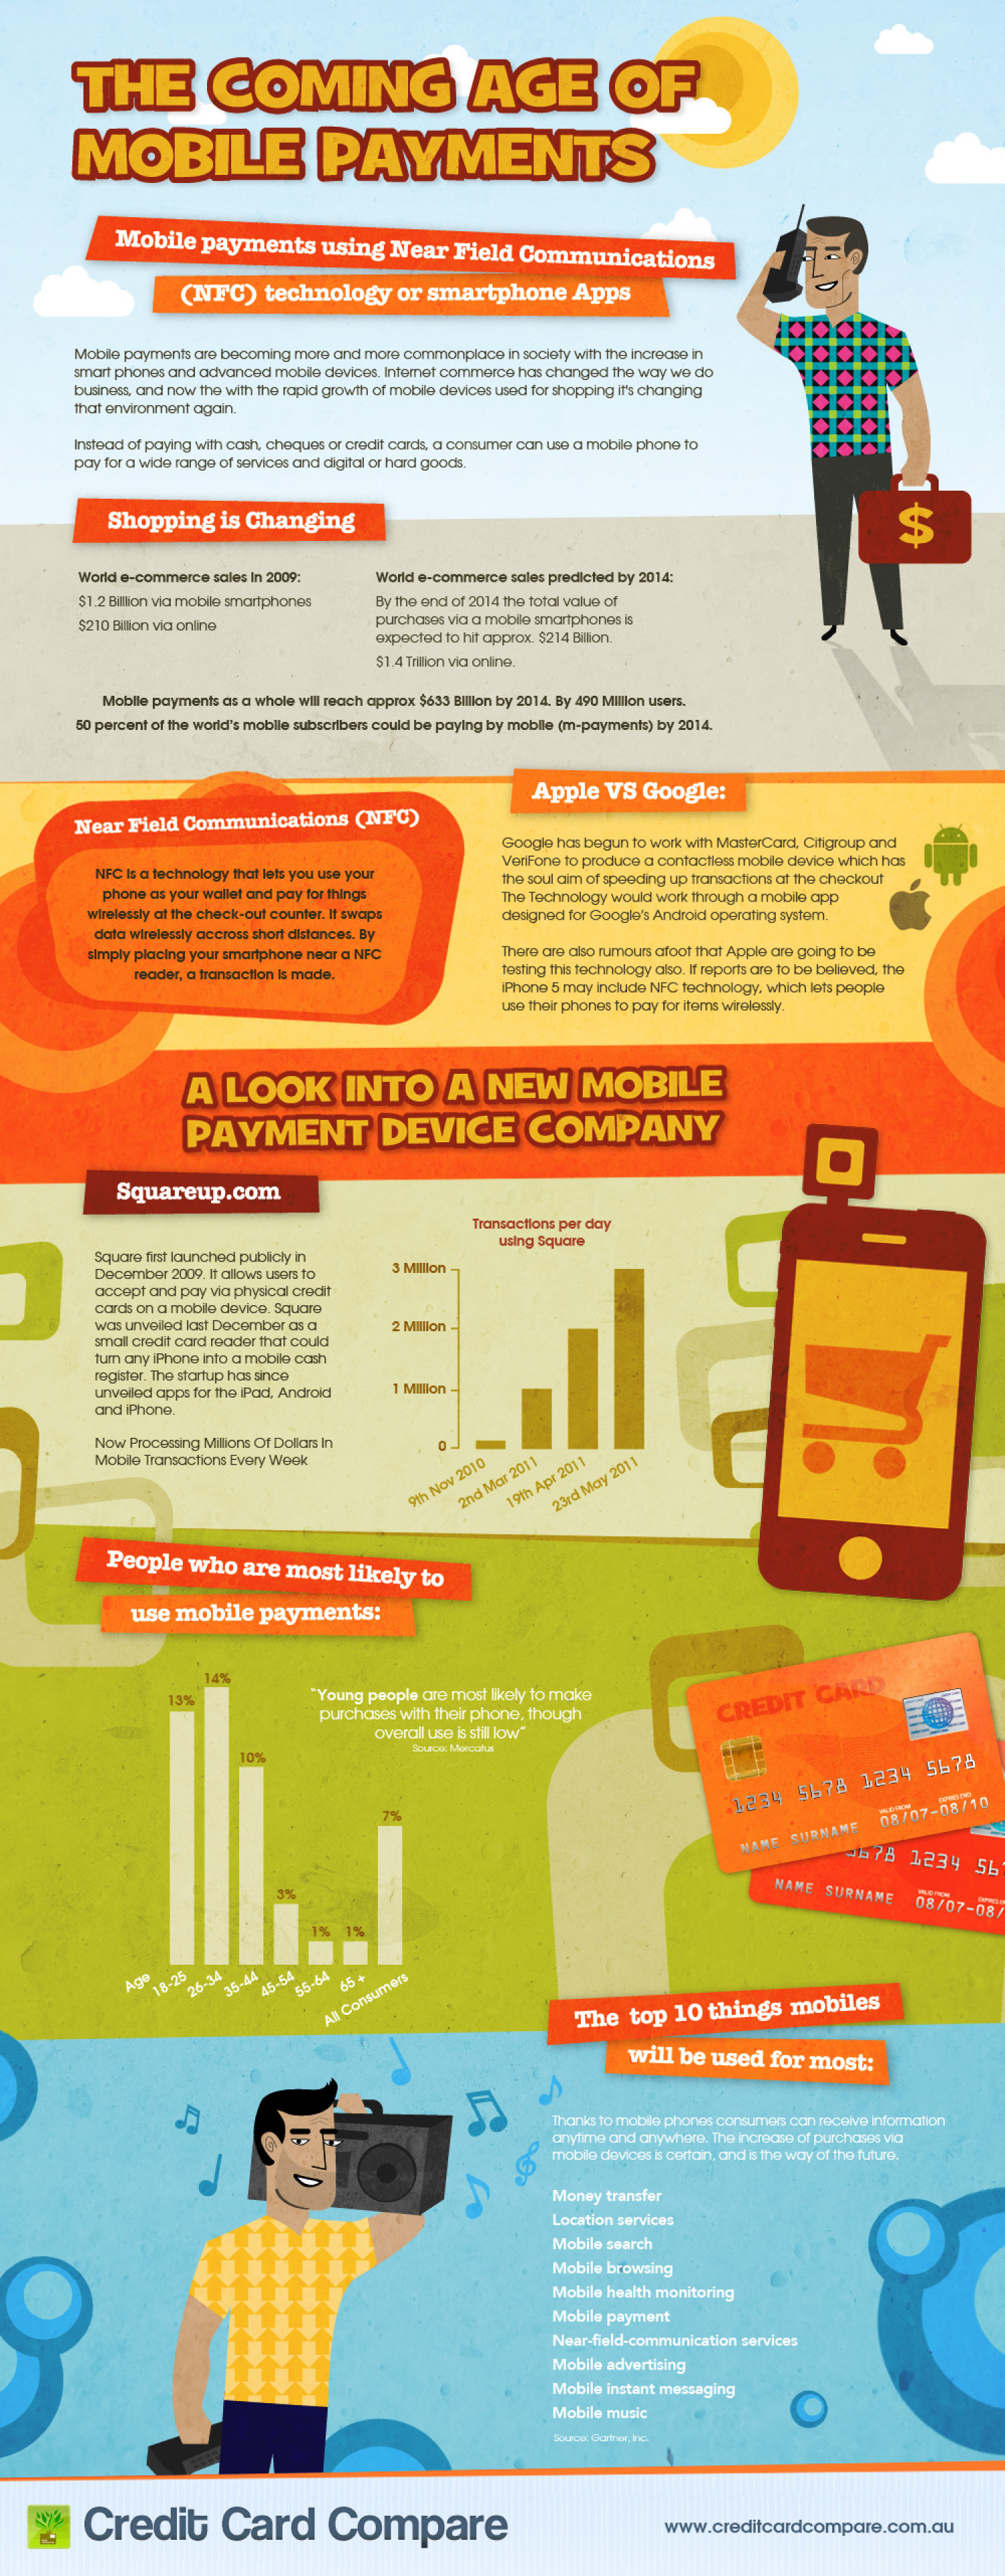 The Coming Age of Mobile Payments Infographic